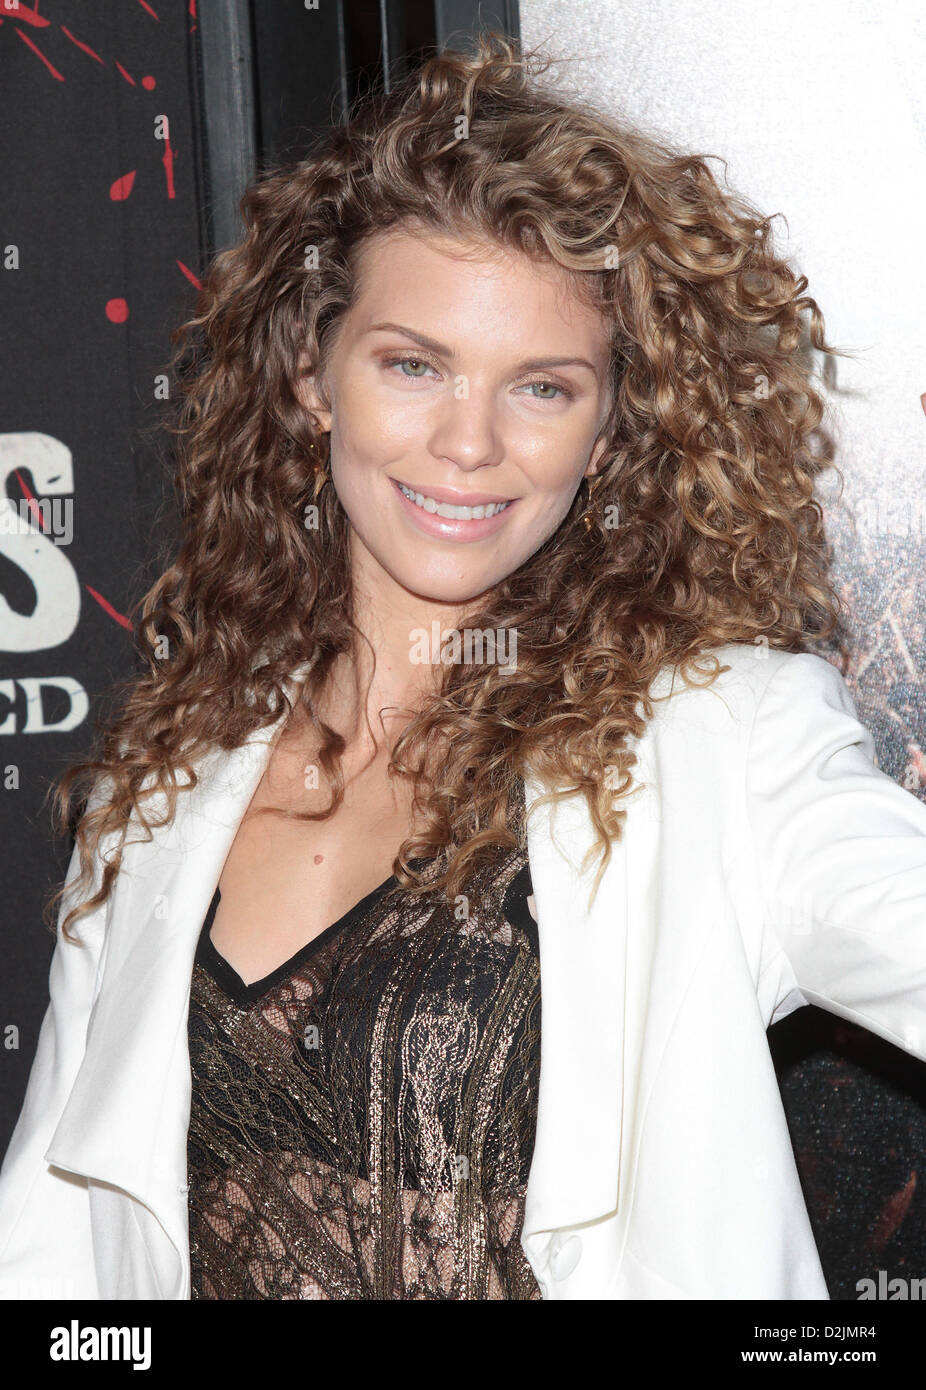 Photos AnnaLynne McCord naked (71 photos), Topless, Bikini, Selfie, in bikini 2020